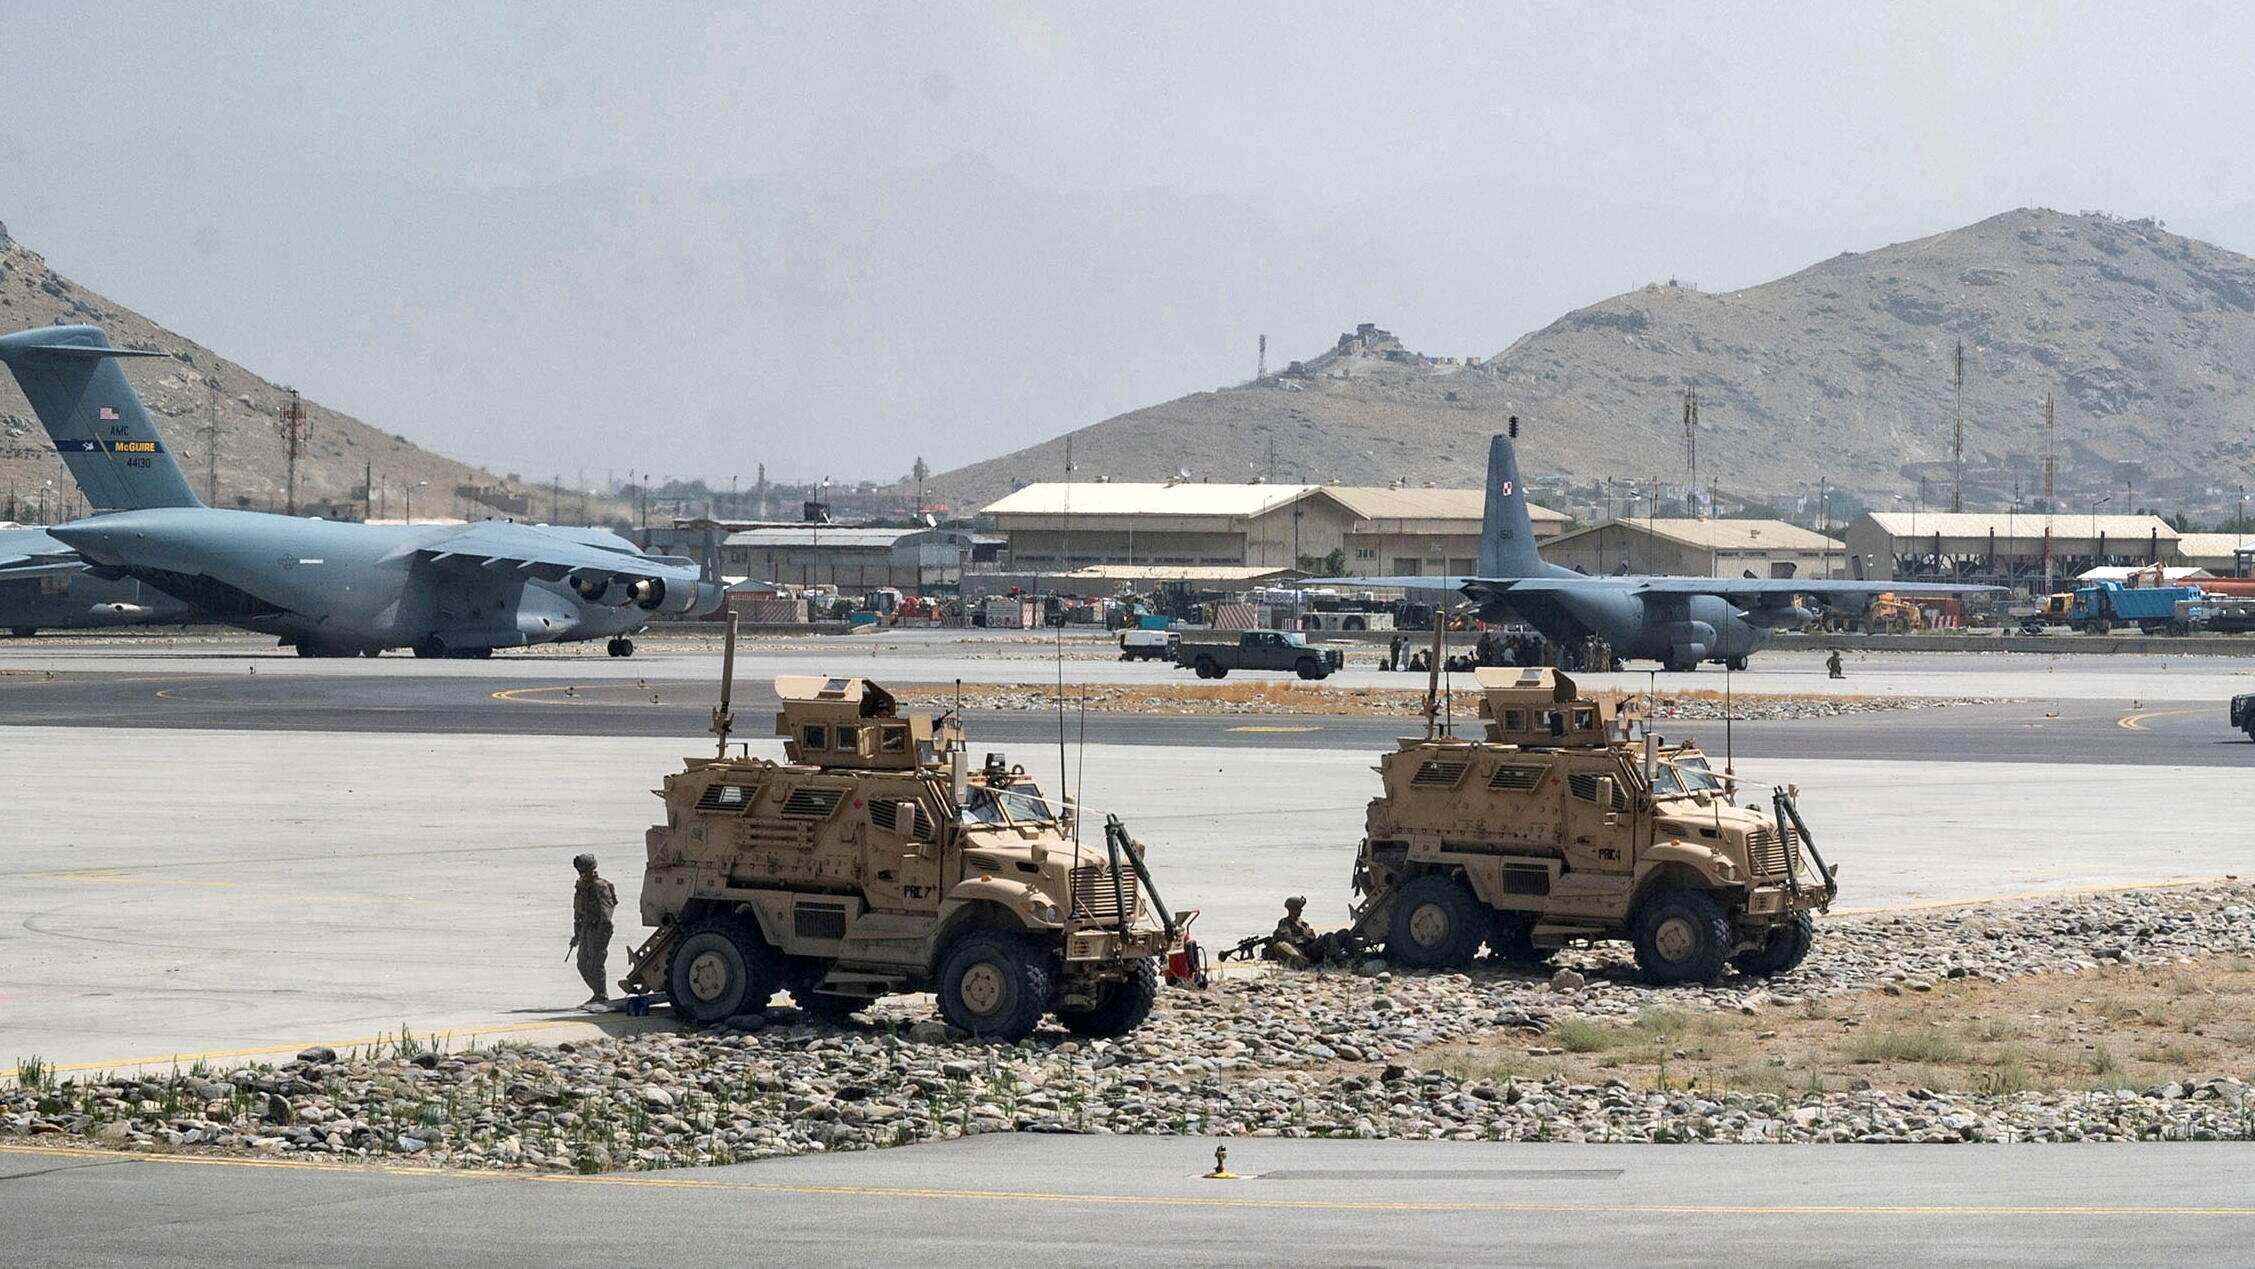 2021-08-19T235622Z_1427343970_RC2N8P920WO4_RTRMADP_3_AFGHANISTAN-CONFLICT-USA-CHINA